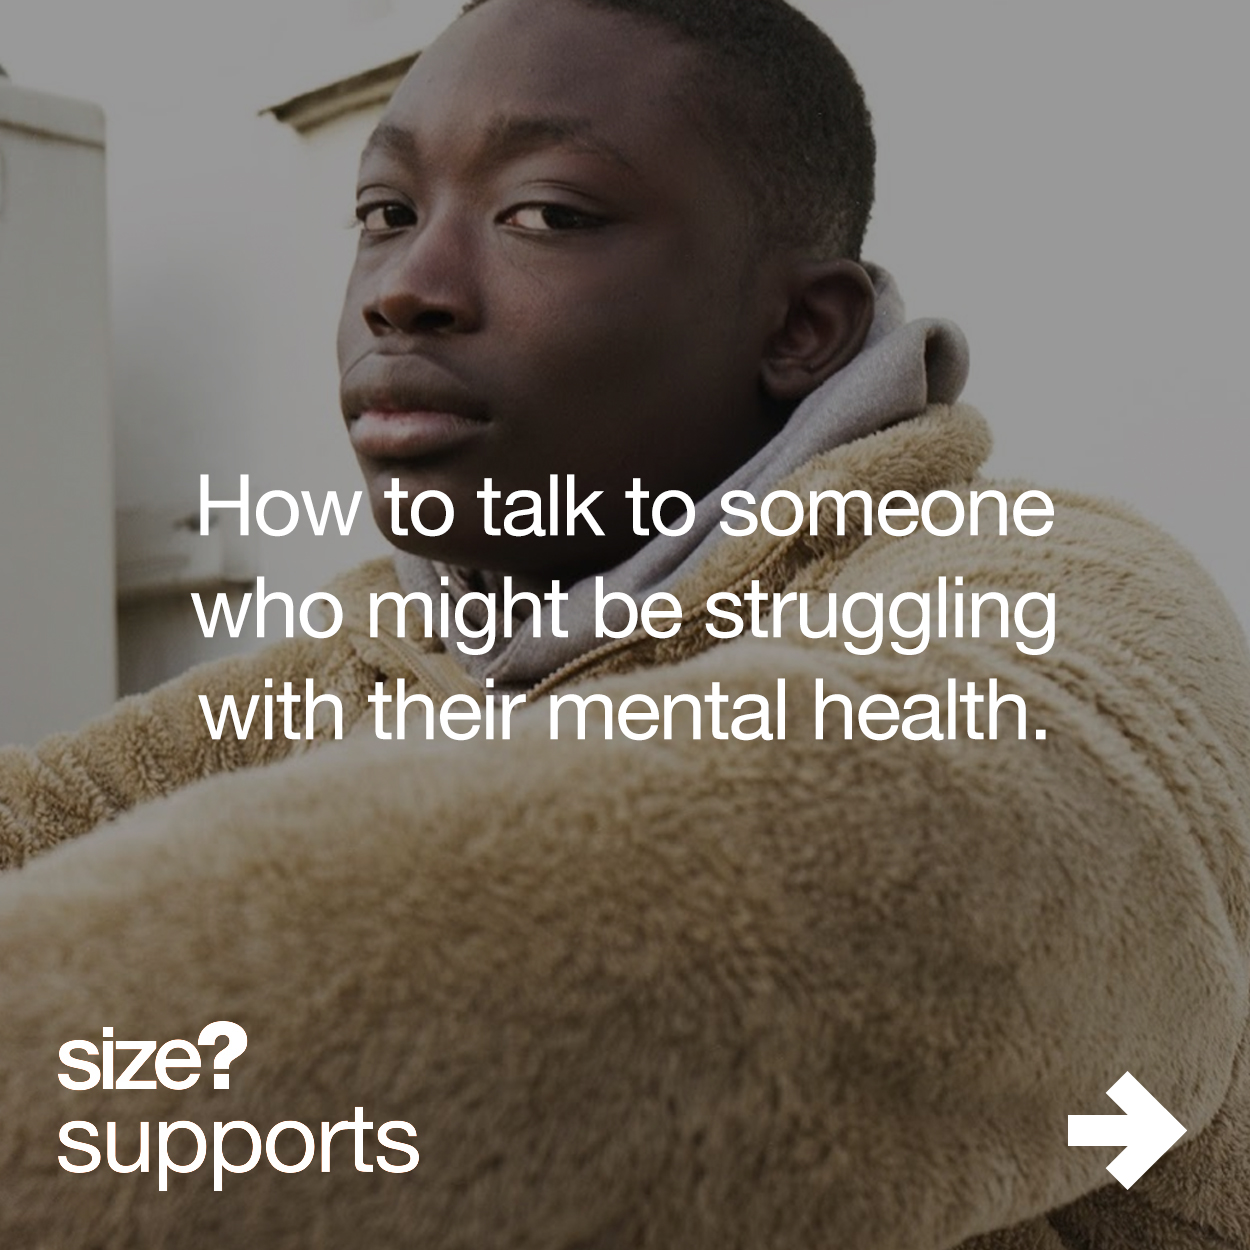 How to talk to a friend who you think might be struggling with their mental health